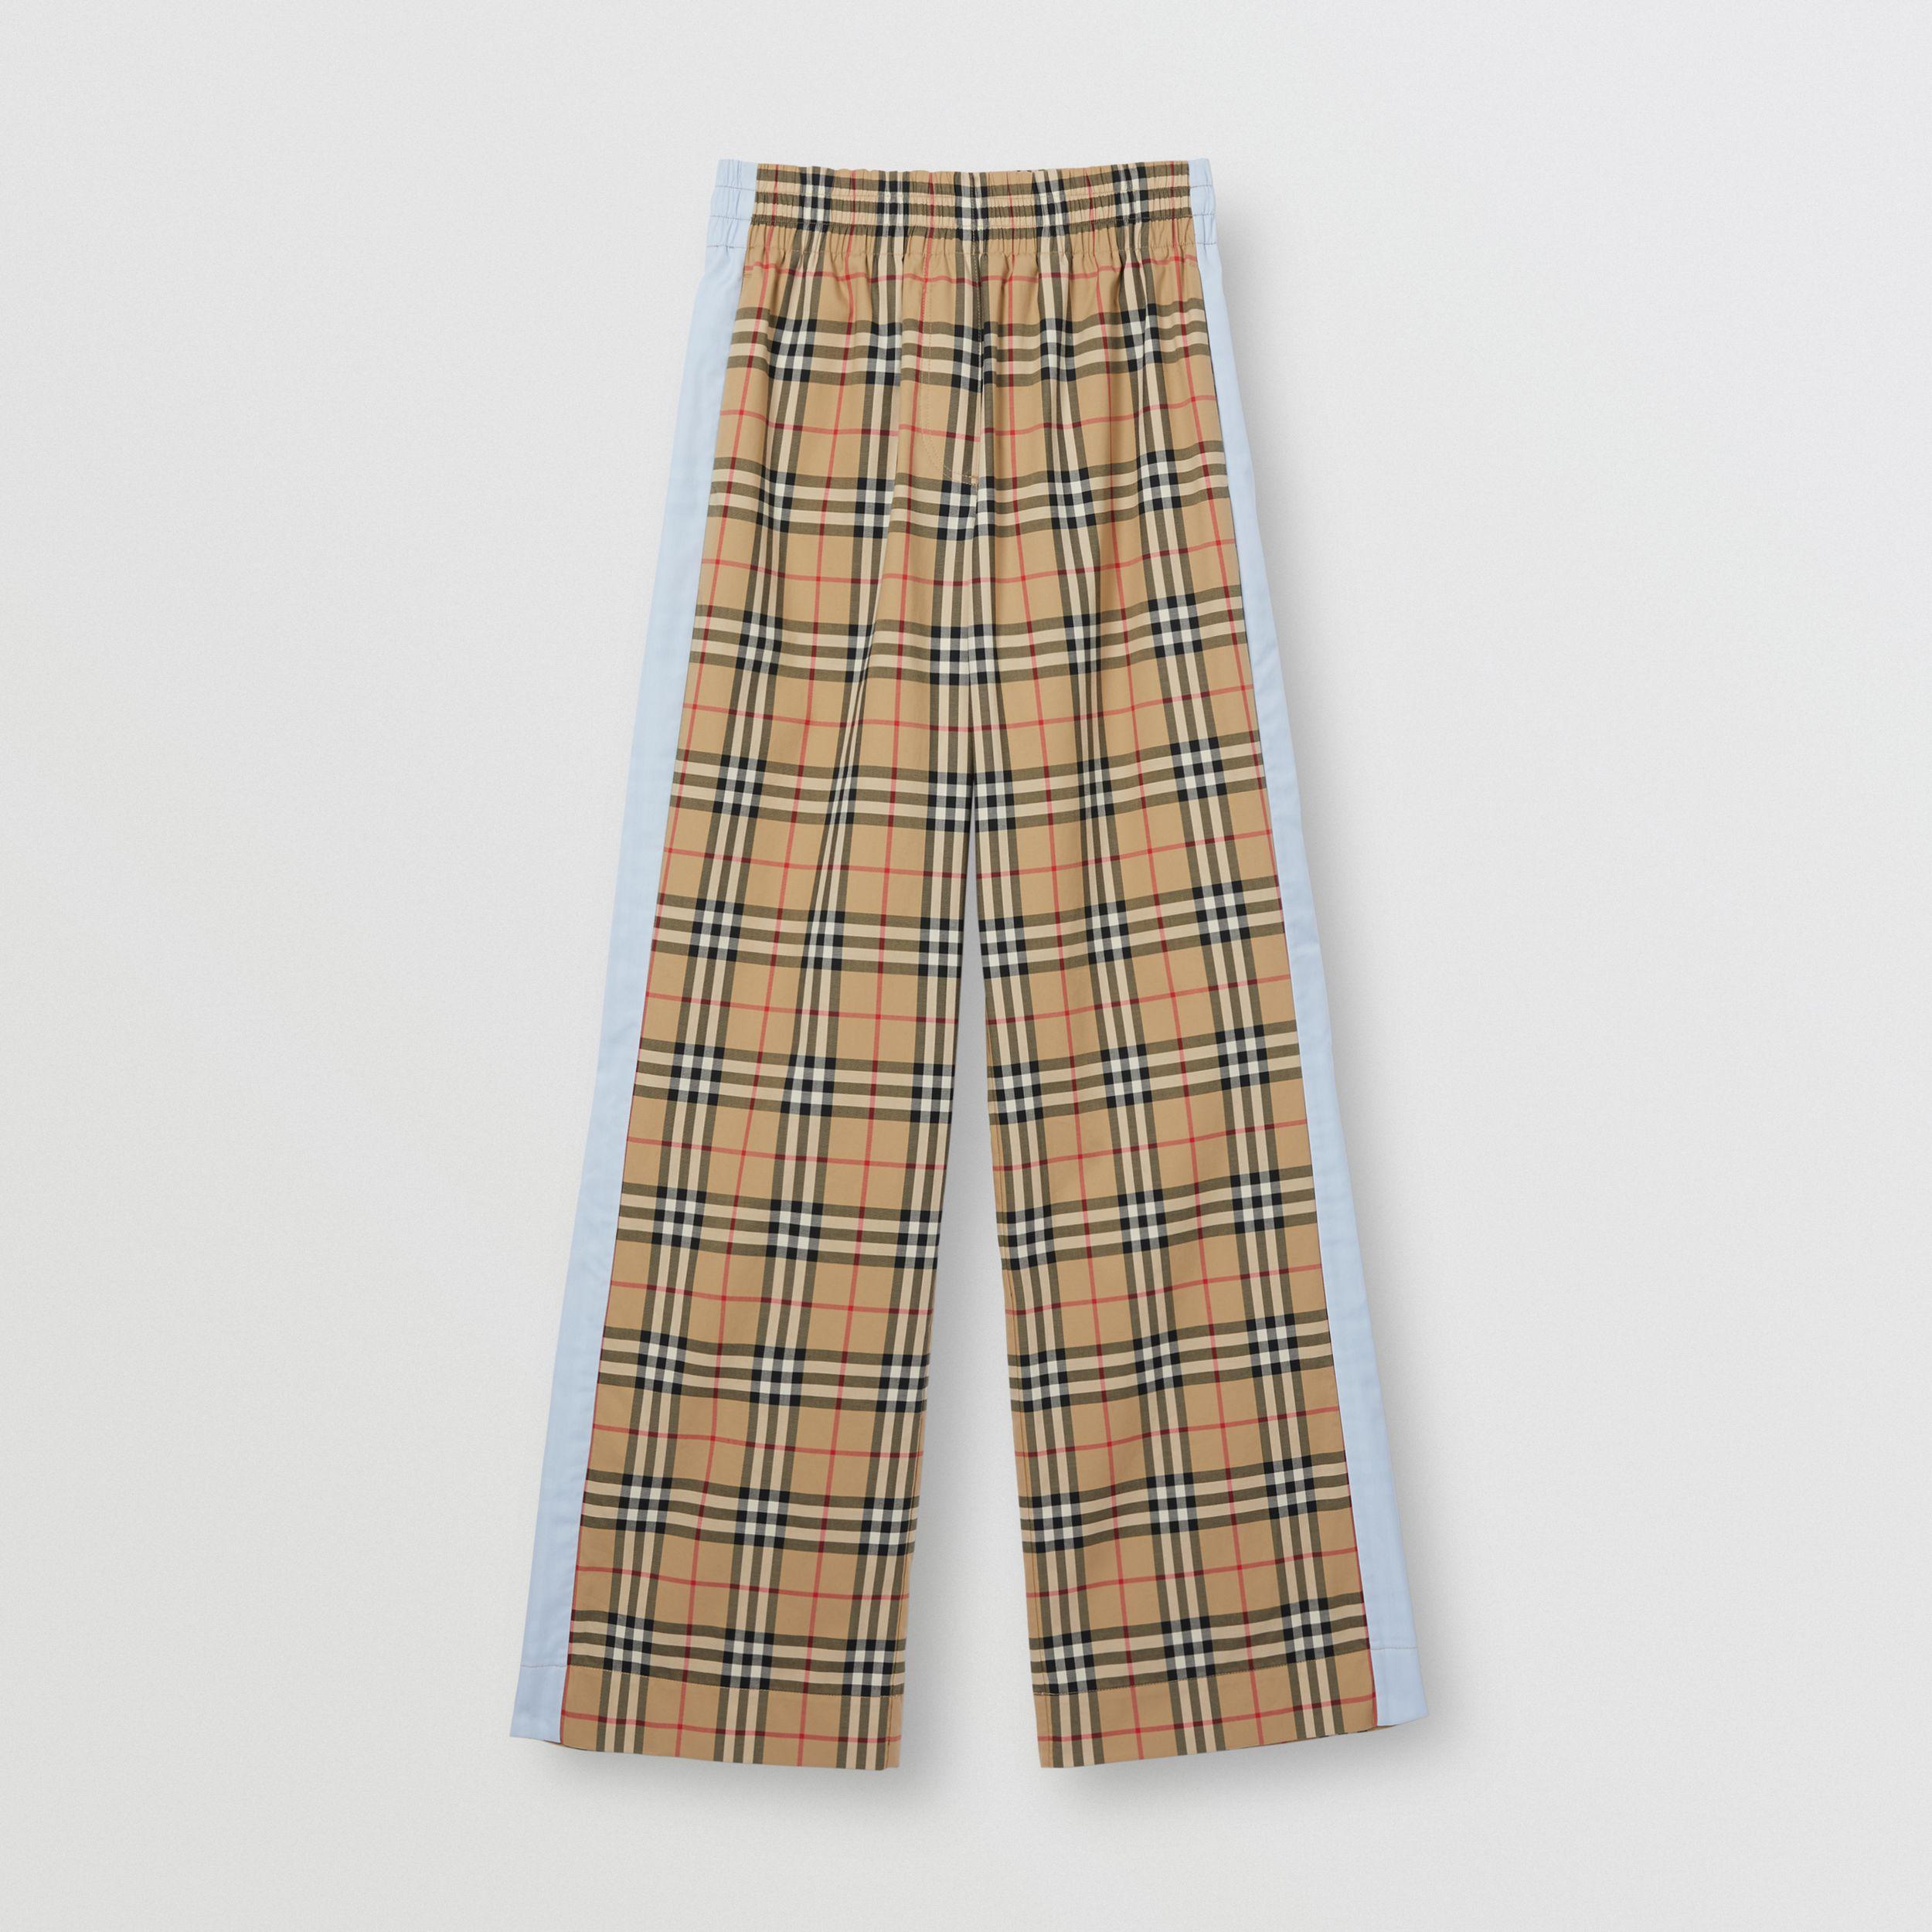 Vintage Check Stretch Cotton Trousers in Archive Beige - Women | Burberry United Kingdom - 4